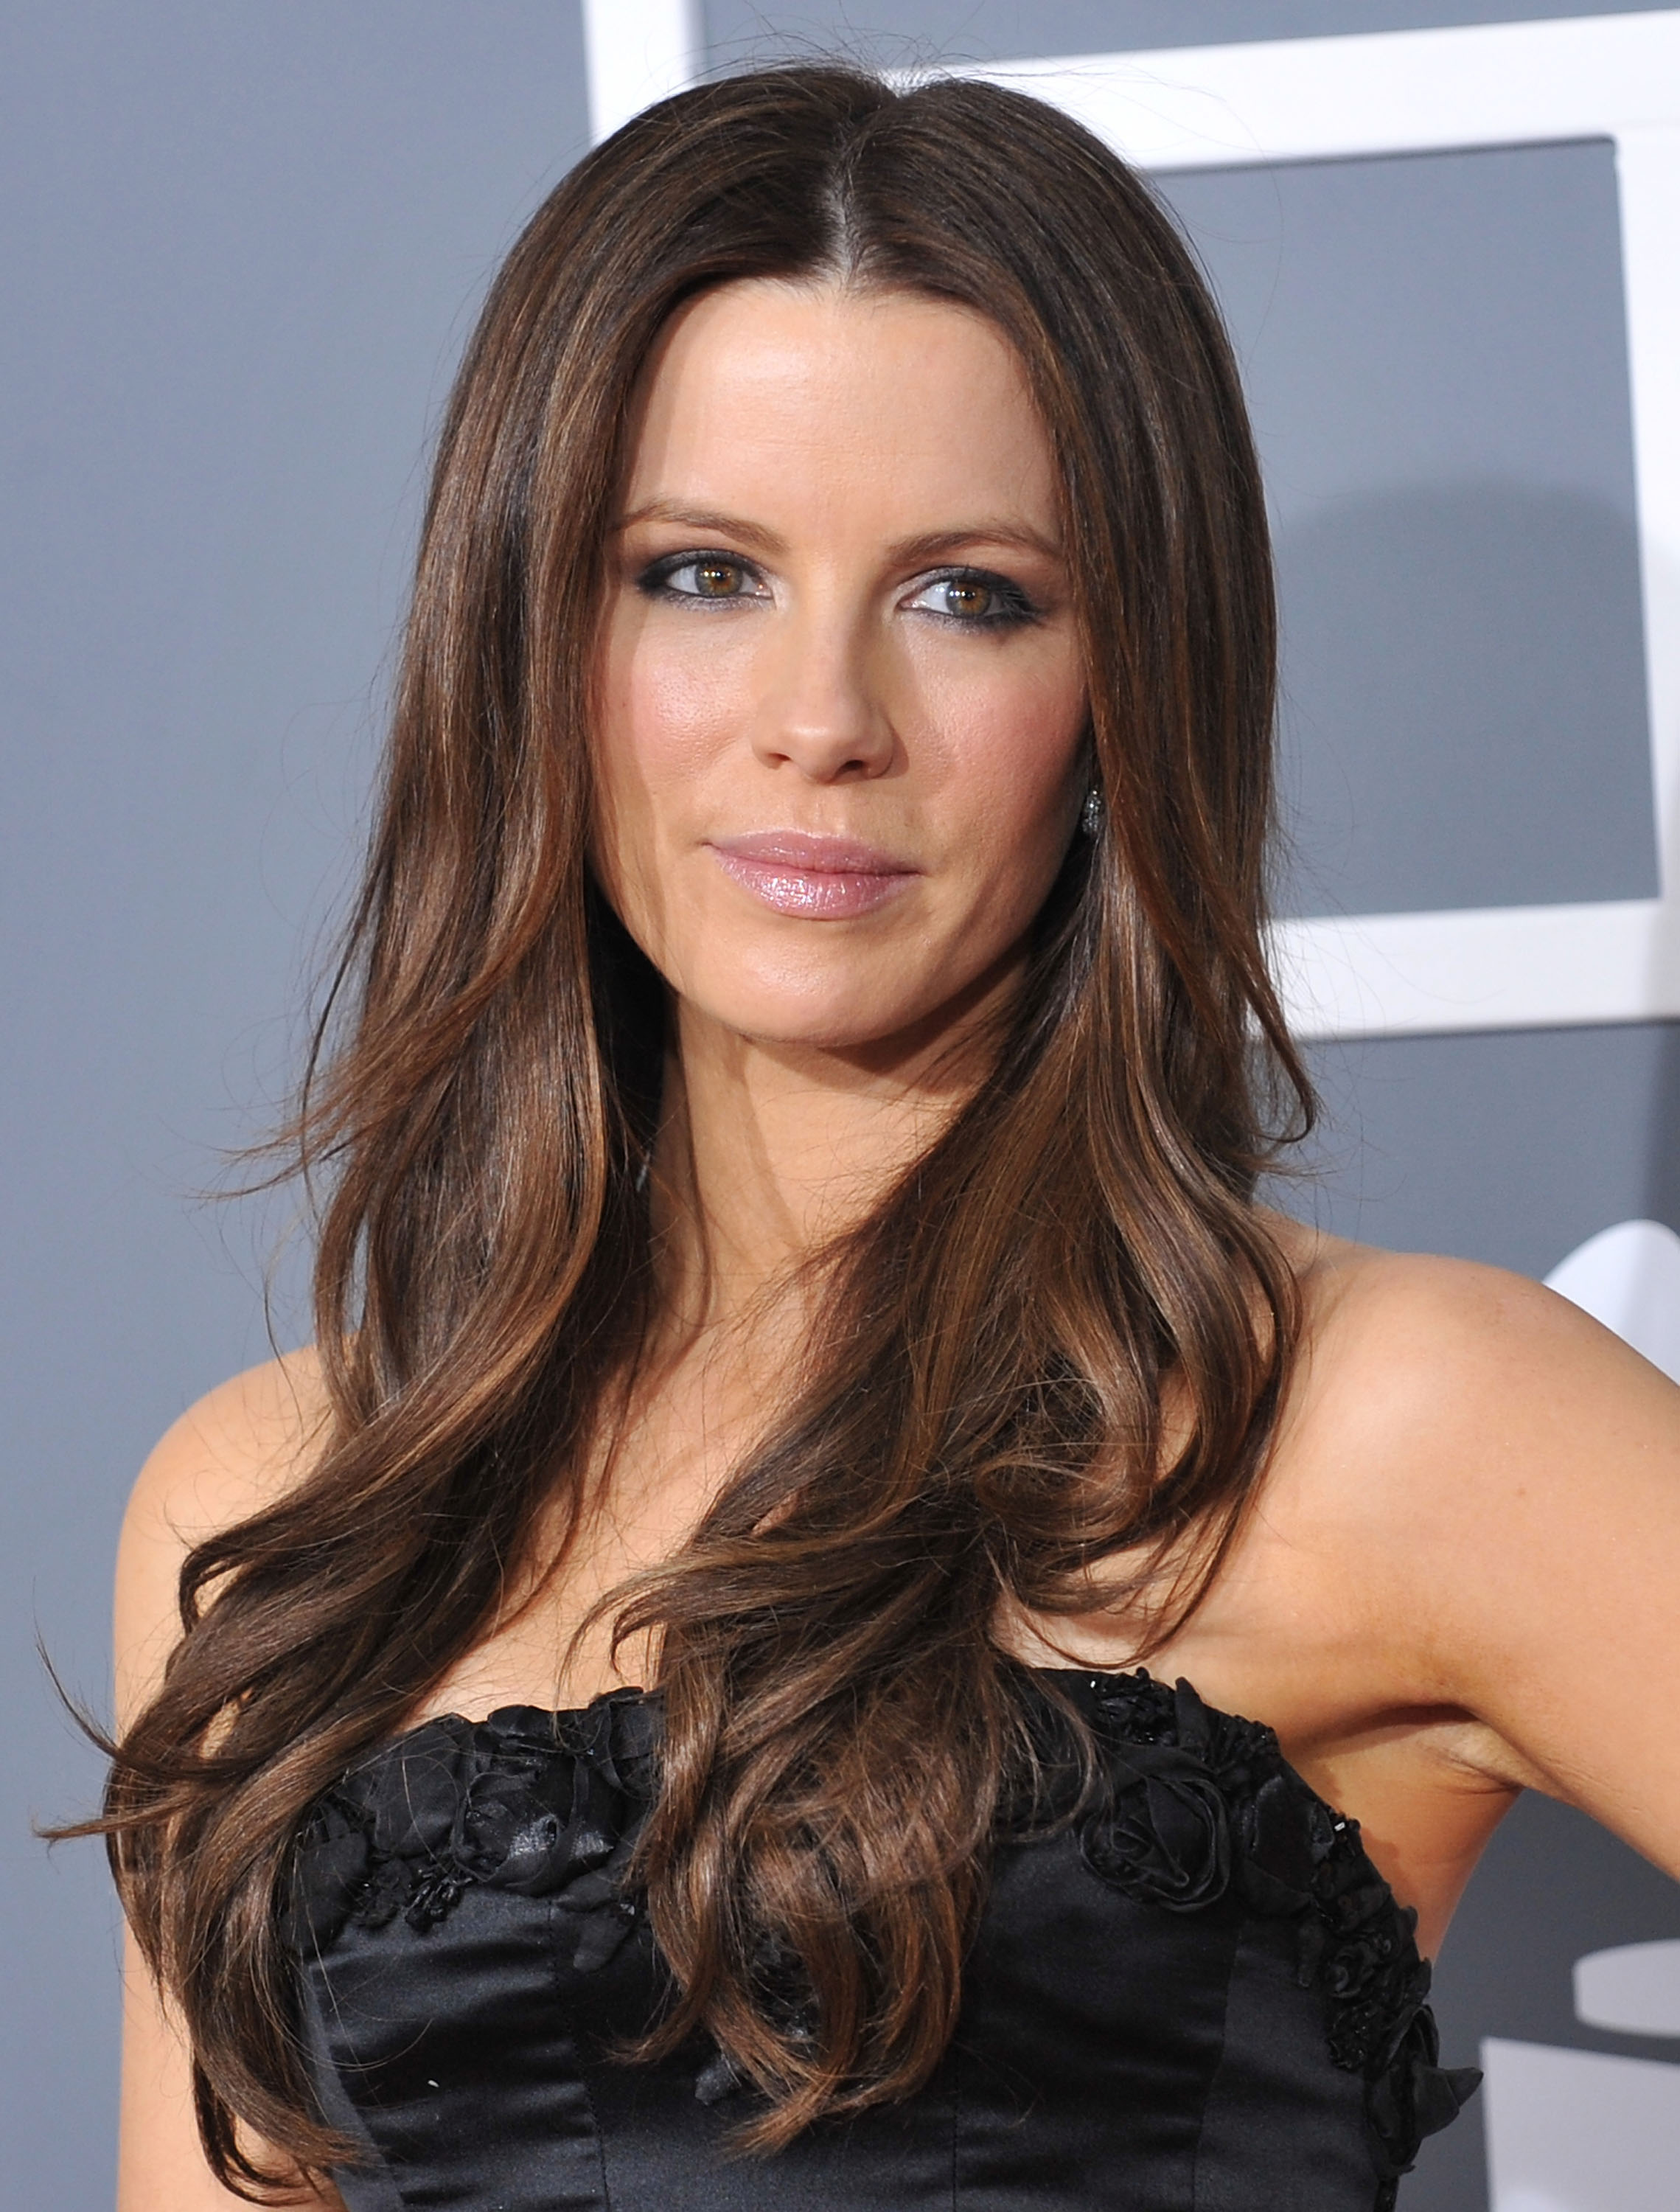 Kate Beckinsale has officially Kate Beckinsale